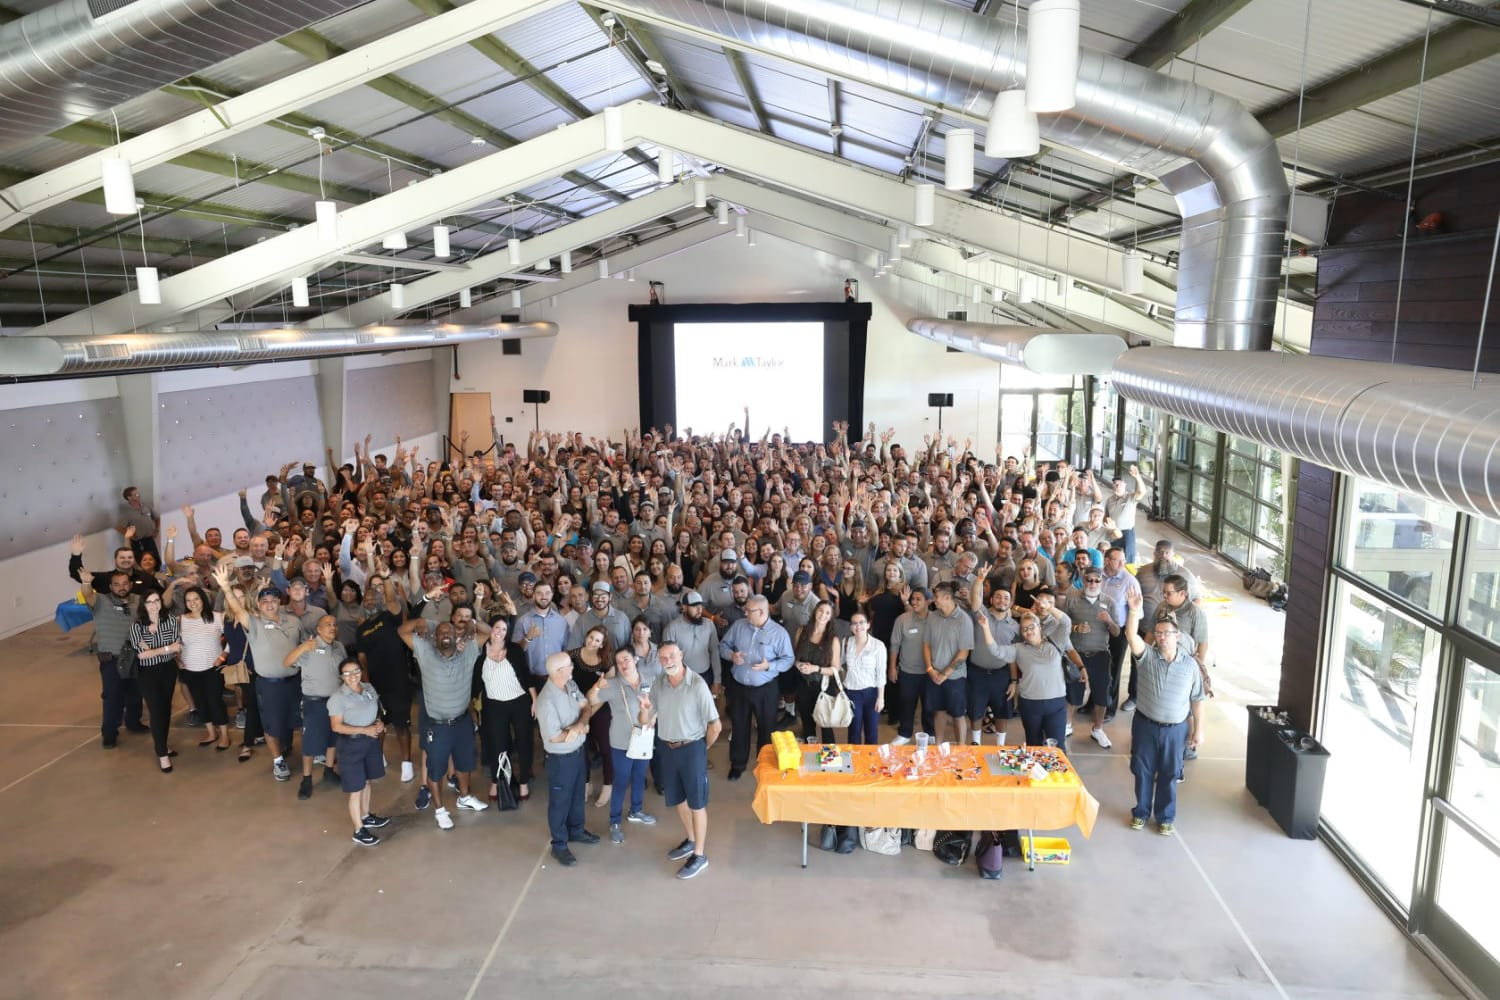 Mark-Taylor employees in a group photo at a large gathering